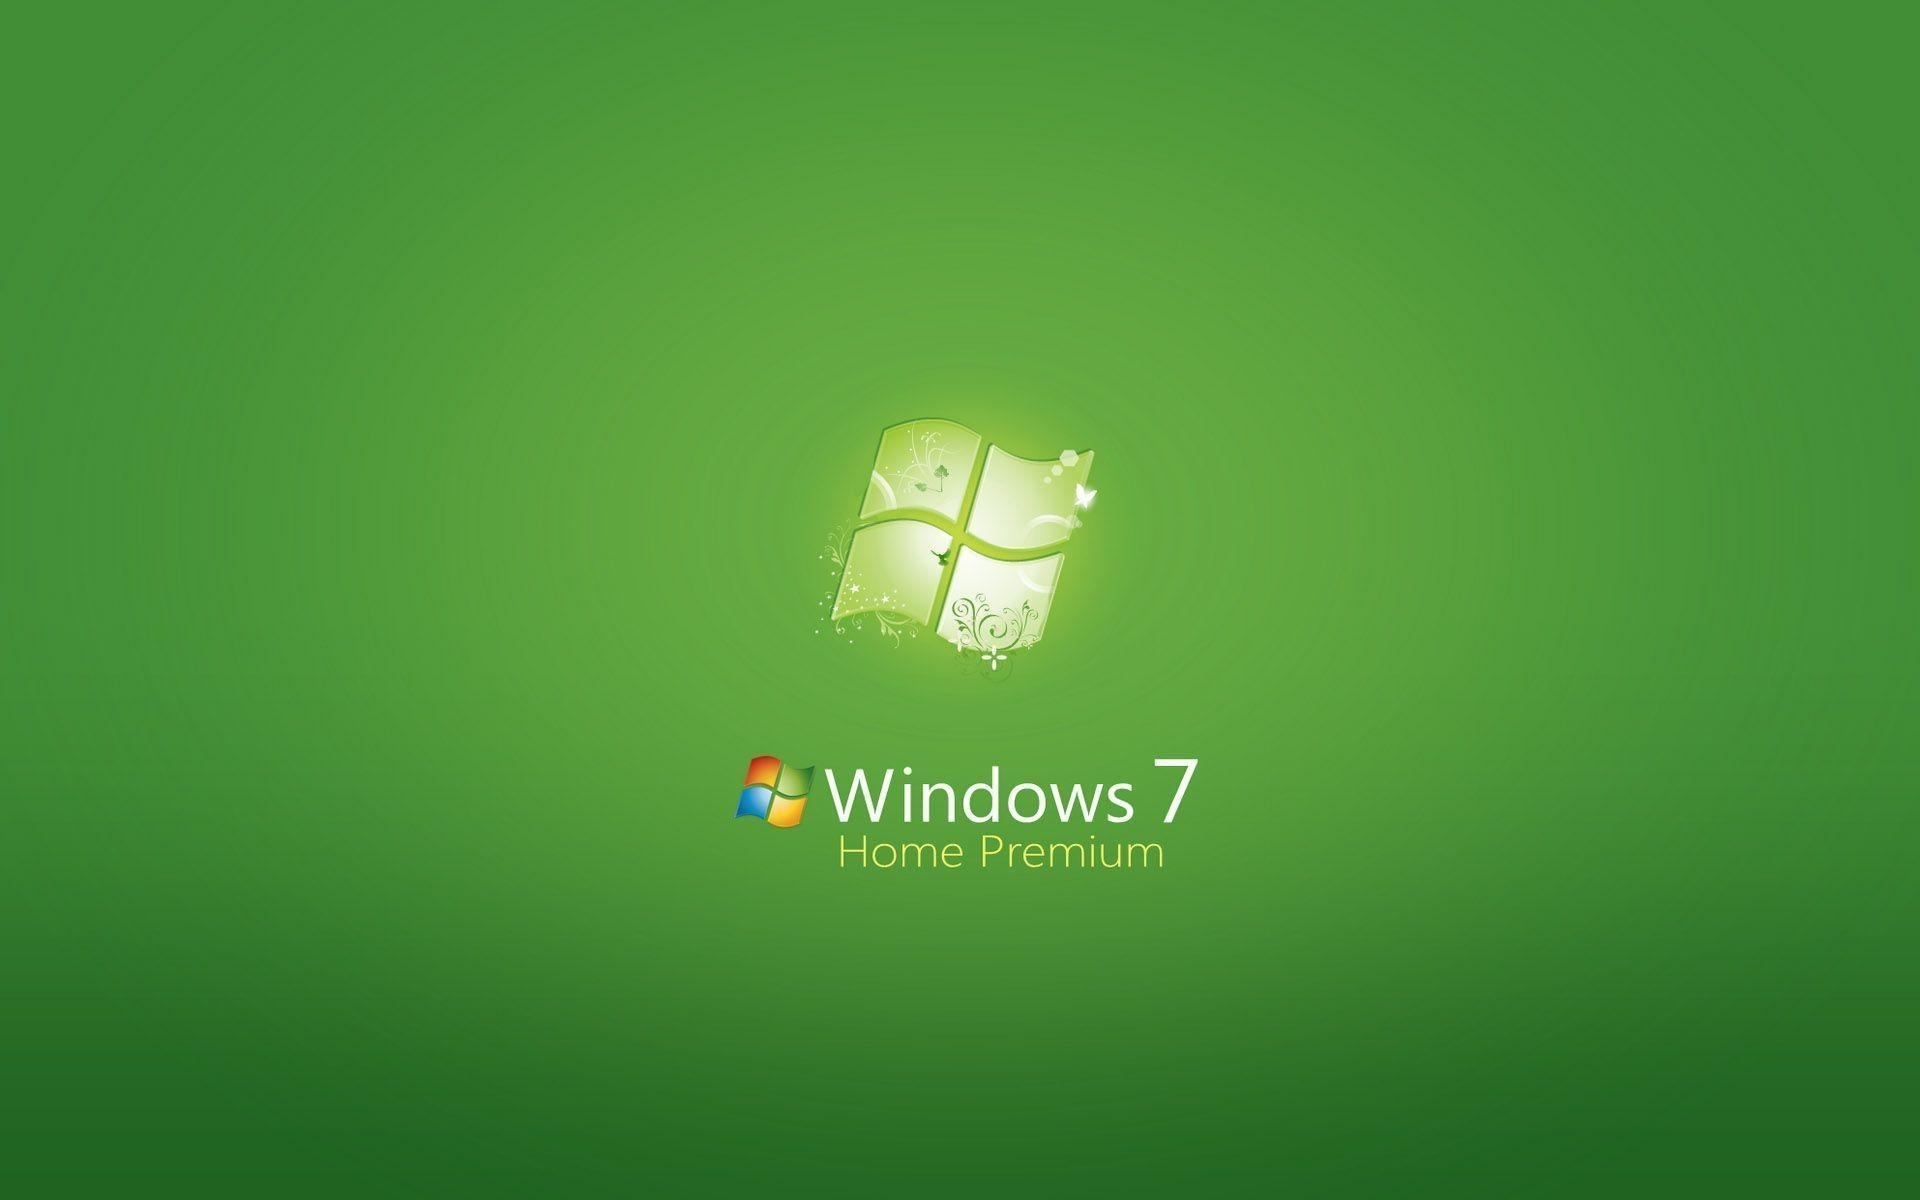 10 New Windows 7 Home Premium Wallpaper FULL HD 1920×1080 For PC Background